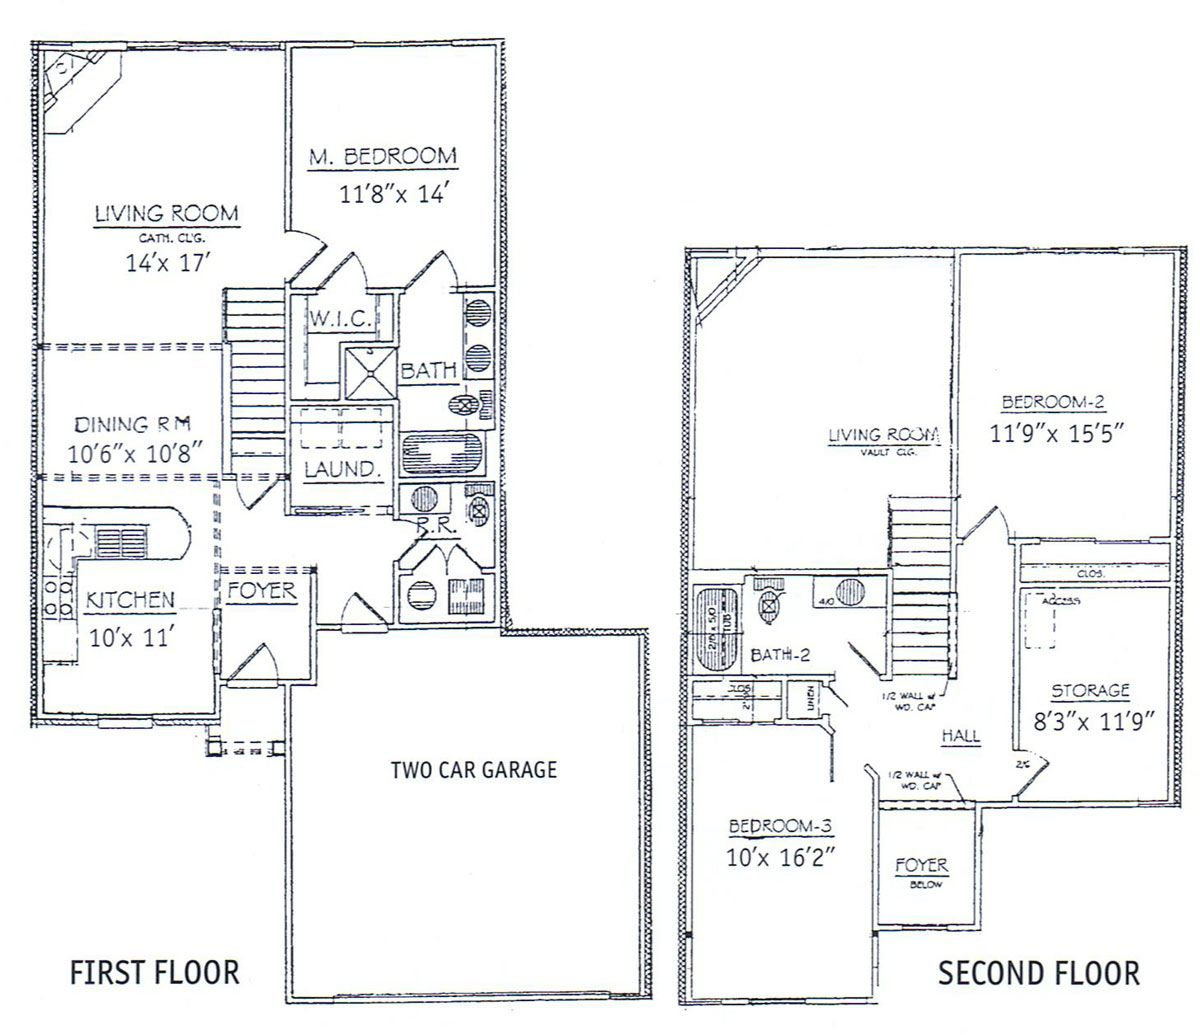 3 bedrooms floor plans 2 story bdrm basement the two Floor plan of a 3 bedroom house